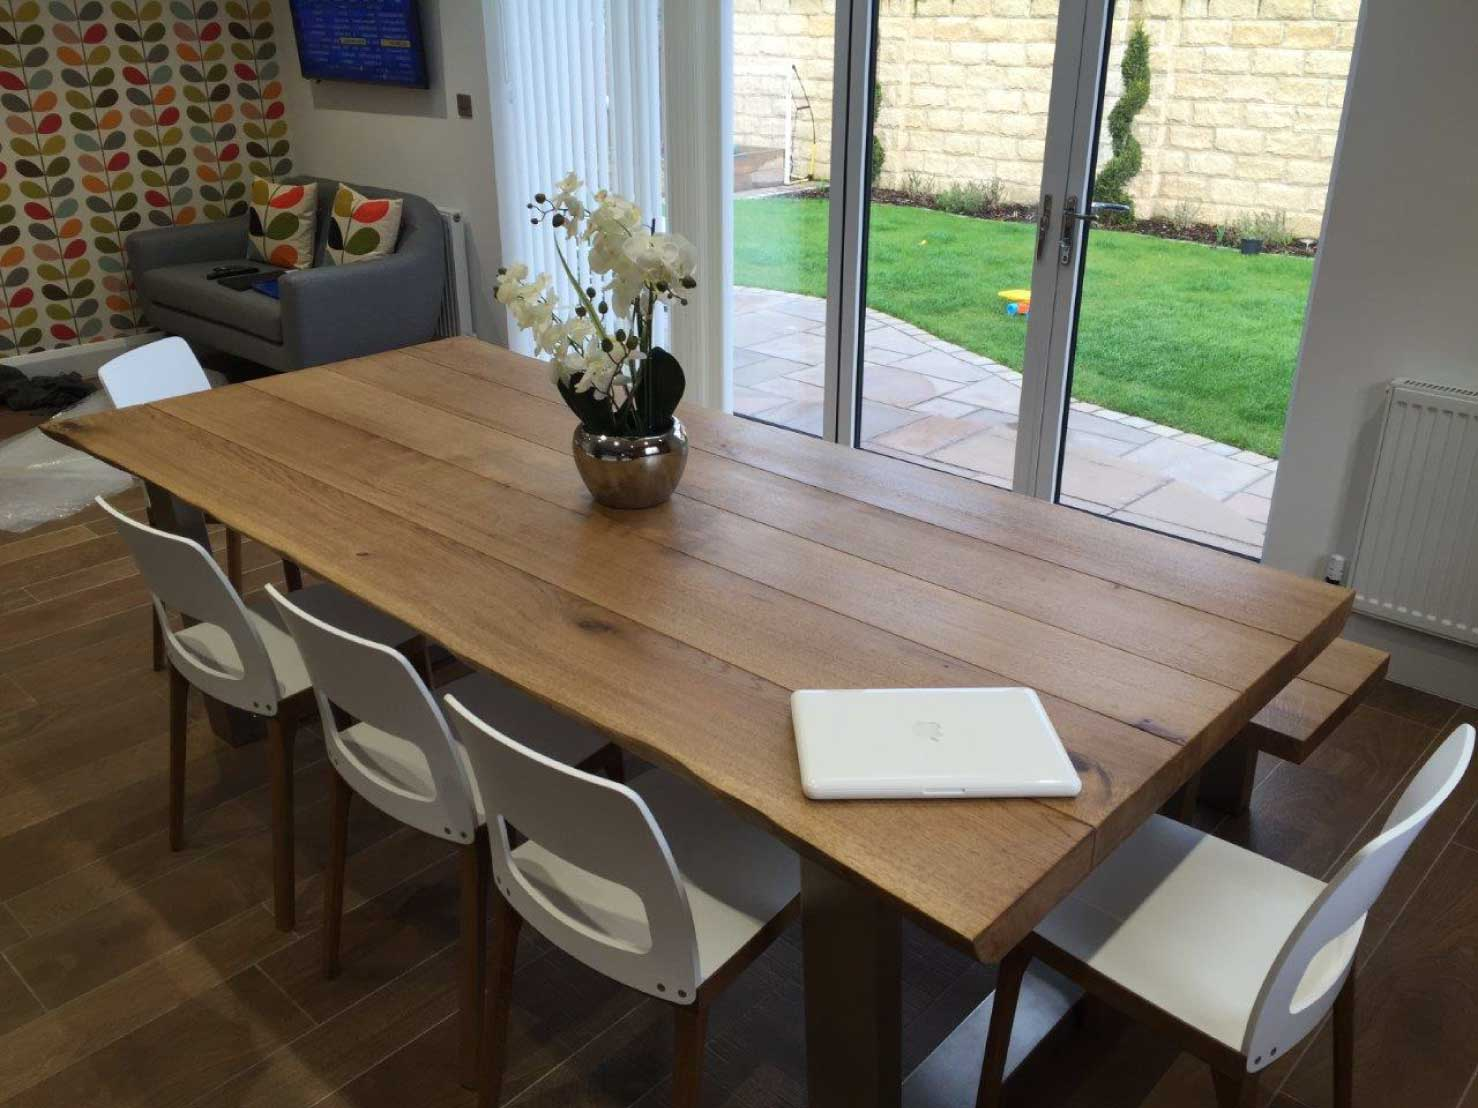 dining-table-set-from-abacus-tables-komodo-2.4m-matching-chairs-&-bench-project-341